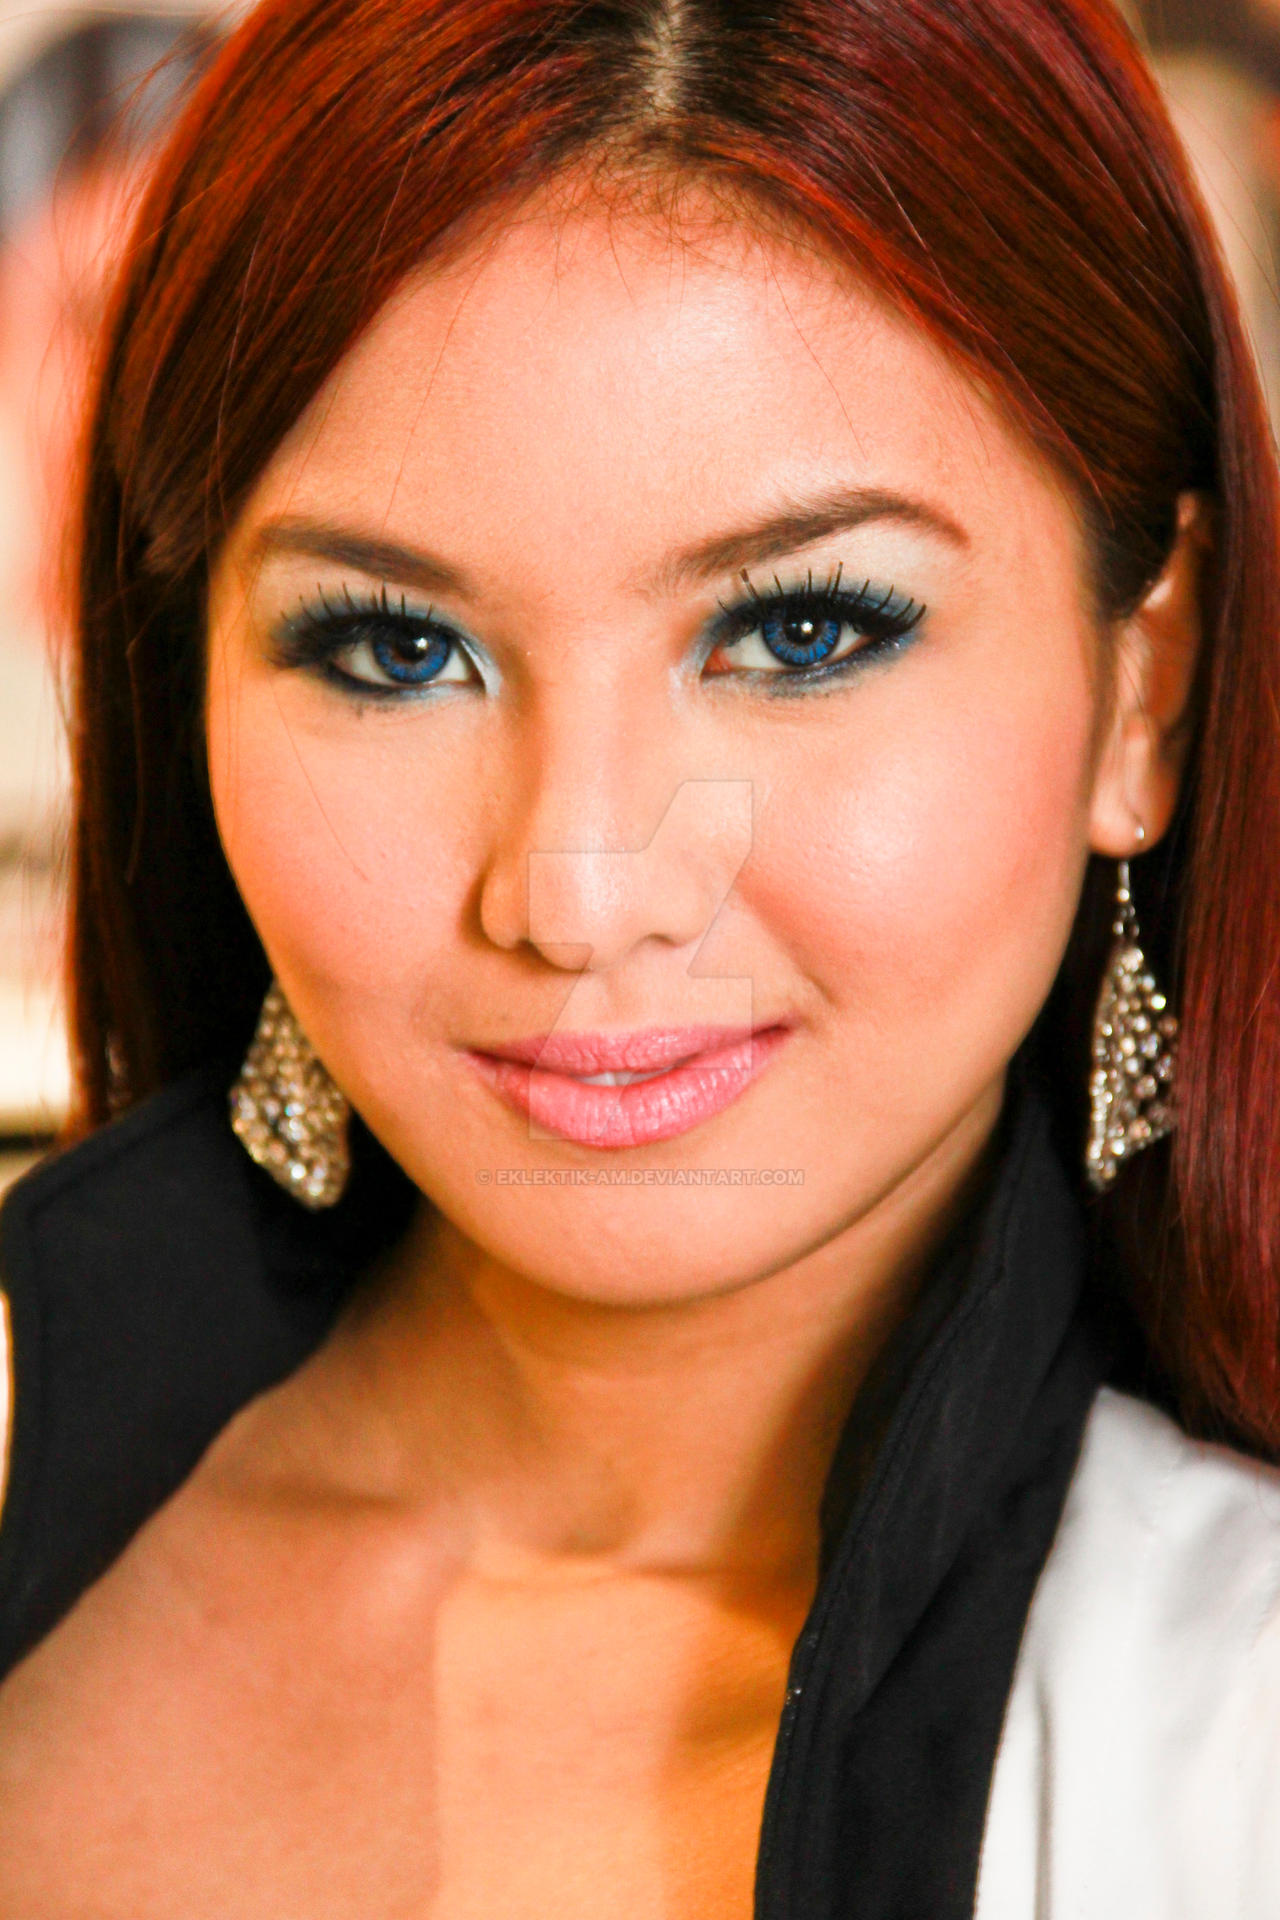 sex pinay beautiful pic